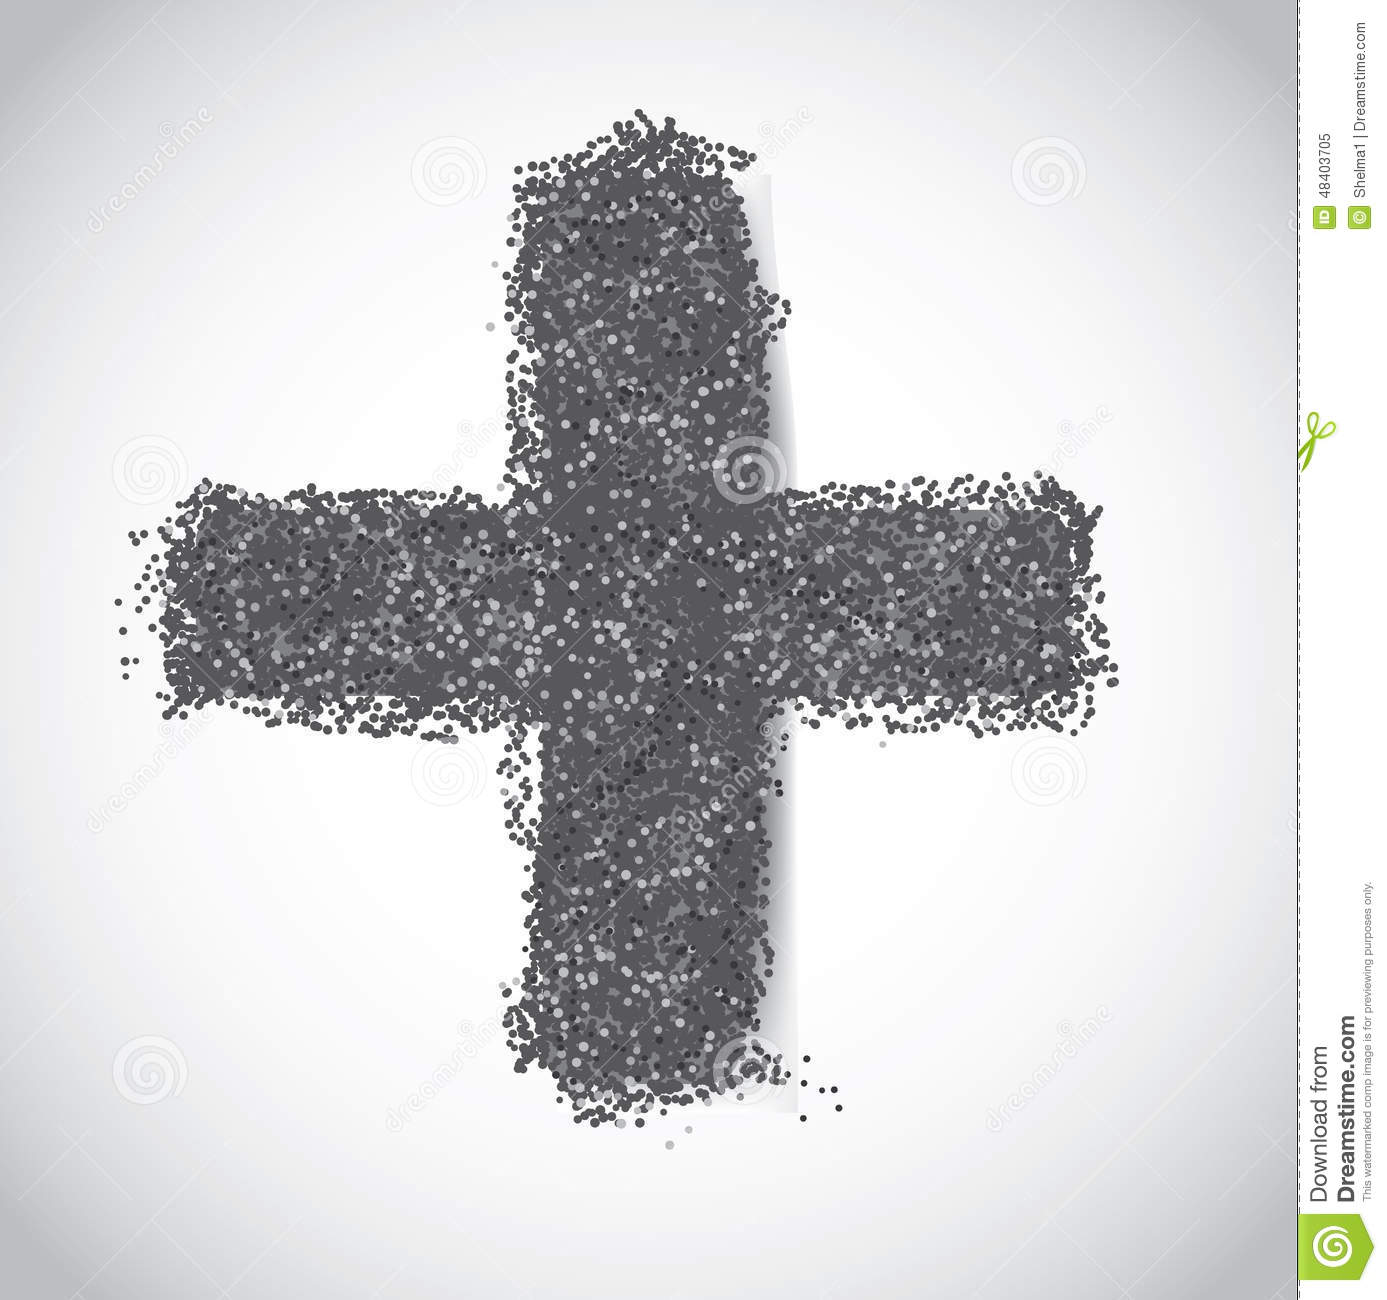 Ash wednesday cross of ashes stock vector image 48403705 ash wednesday cross of ashes buycottarizona